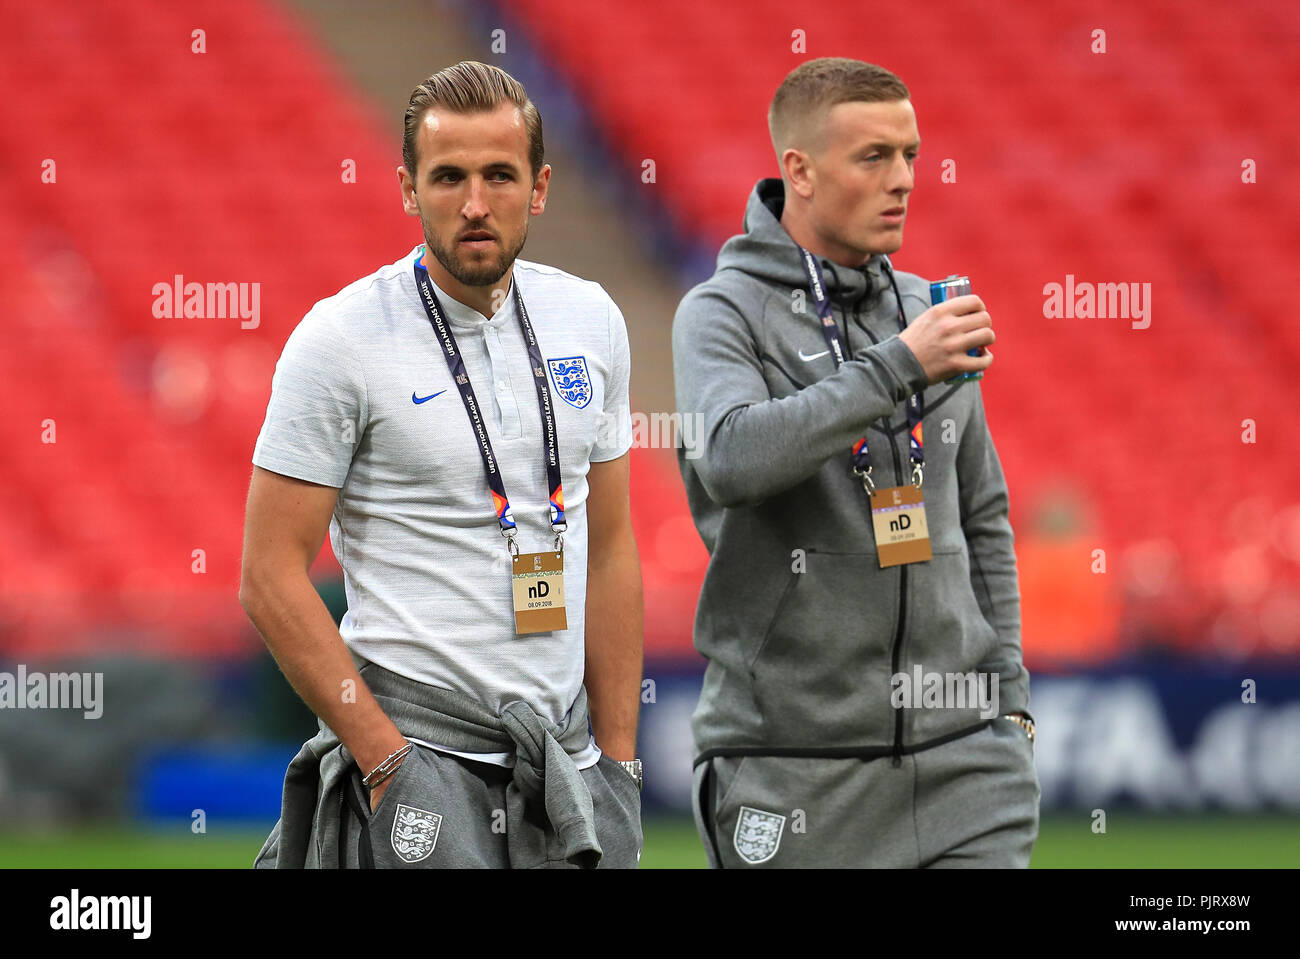 England S Harry Kane Left Prior To The Uefa Nations League League A Group Four Match At Wembley Stadium London Press Association Photo Picture Date Saturday September 8 2018 See Pa Story Soccer